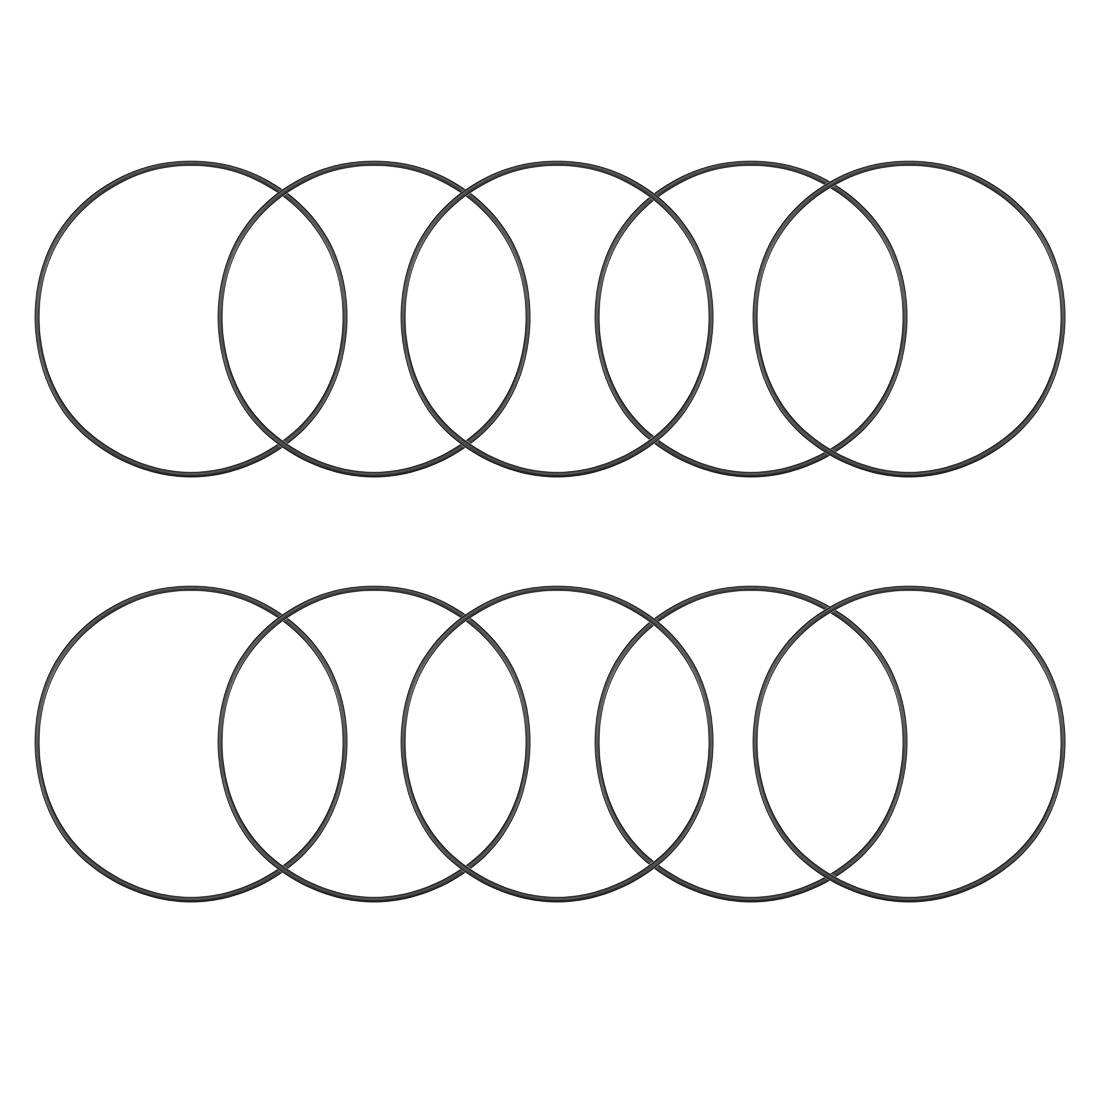 O-Rings Nitrile Rubber 132mm x 137.3mm x 2.65mm Round Seal Gasket 10 Pcs